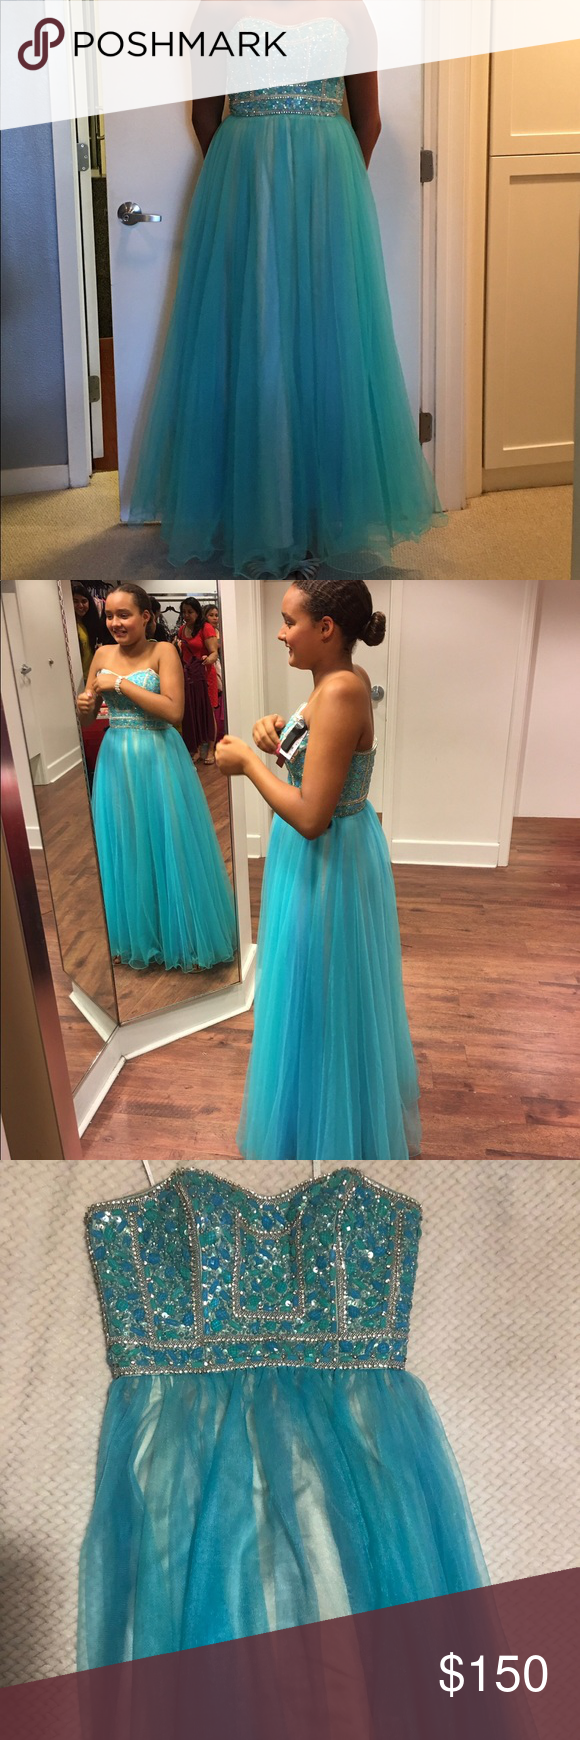 Girls prom dress my posh picks pinterest turquoise prom